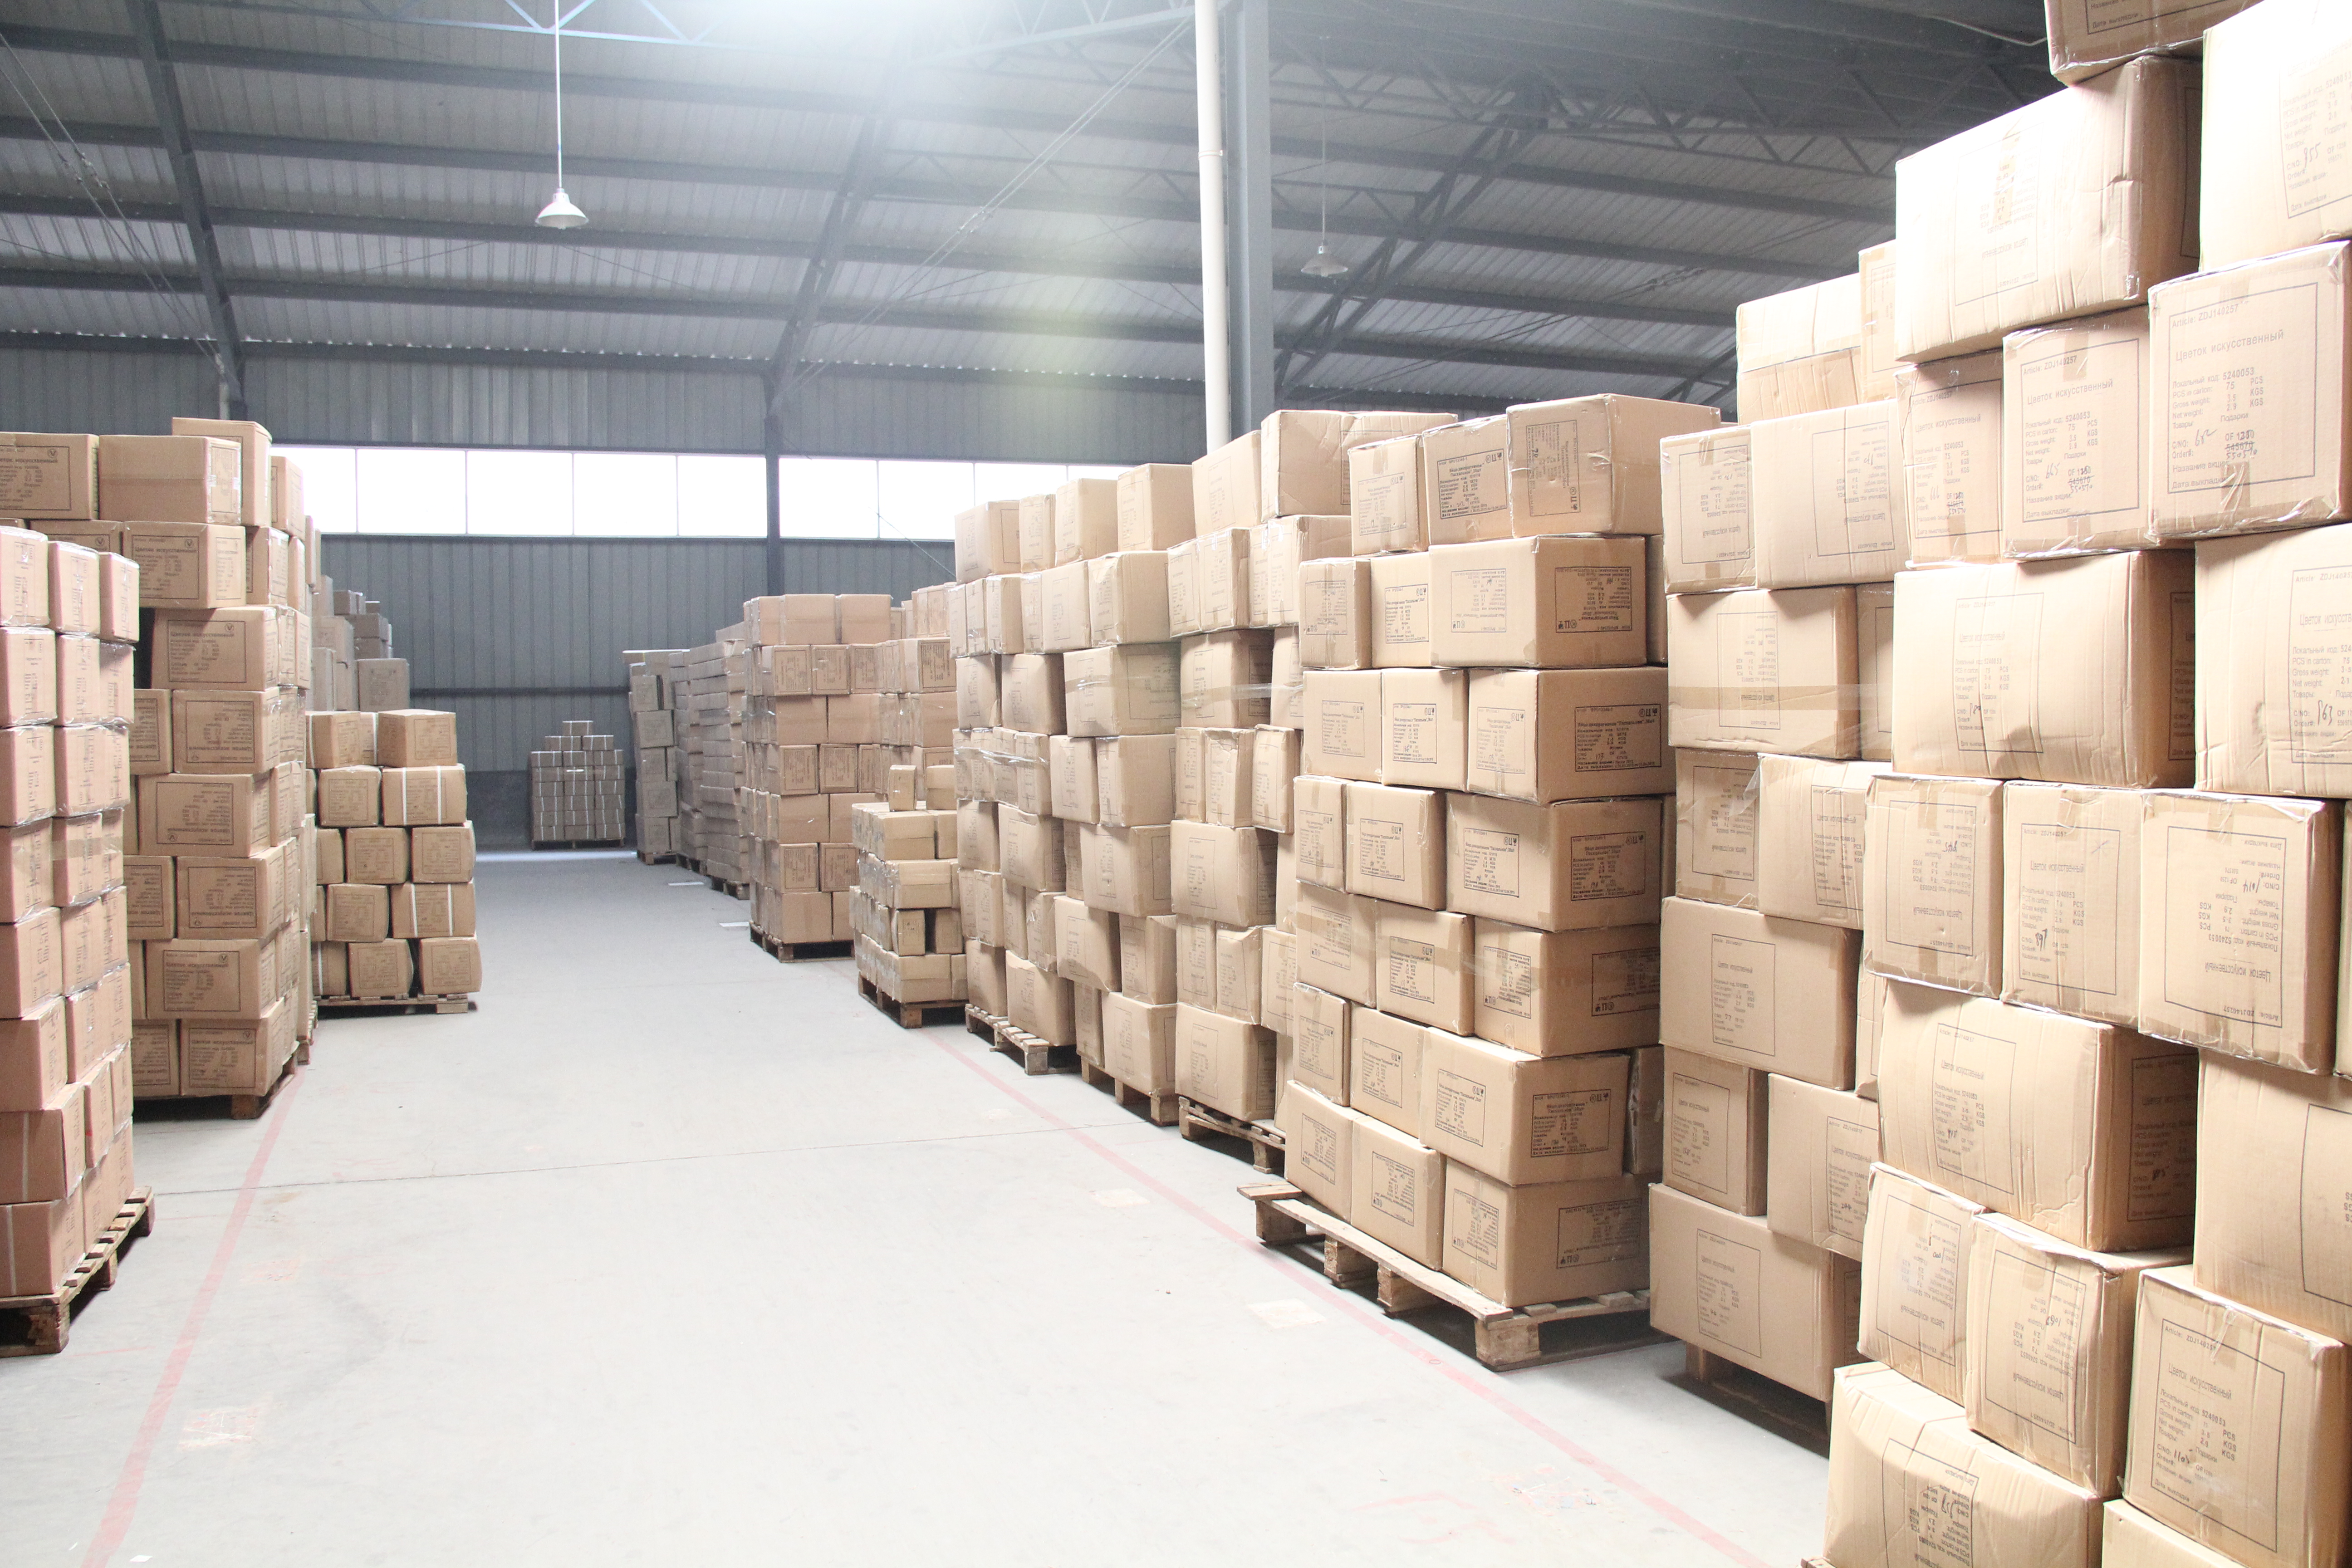 China's warehouse storage sector continues to recover in June